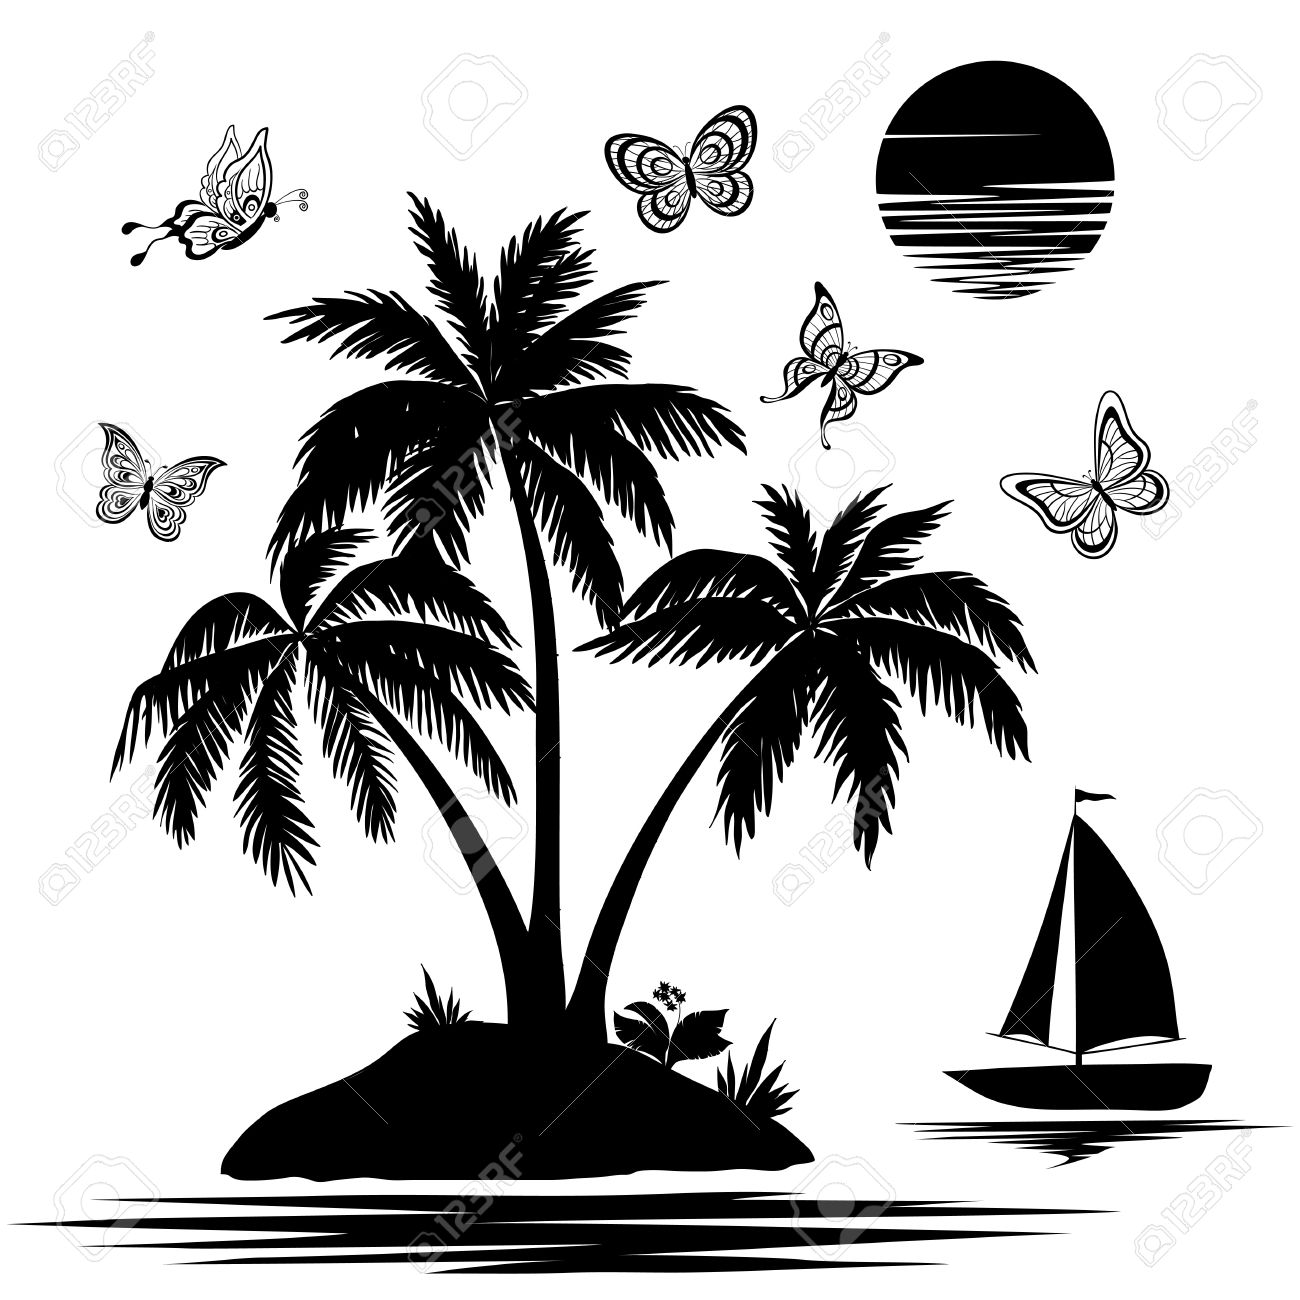 Tropical sea island with palm trees and flowers, ship, butterflies and sun  Set black silhouettes and contours on white background Stock Vector - 15049372